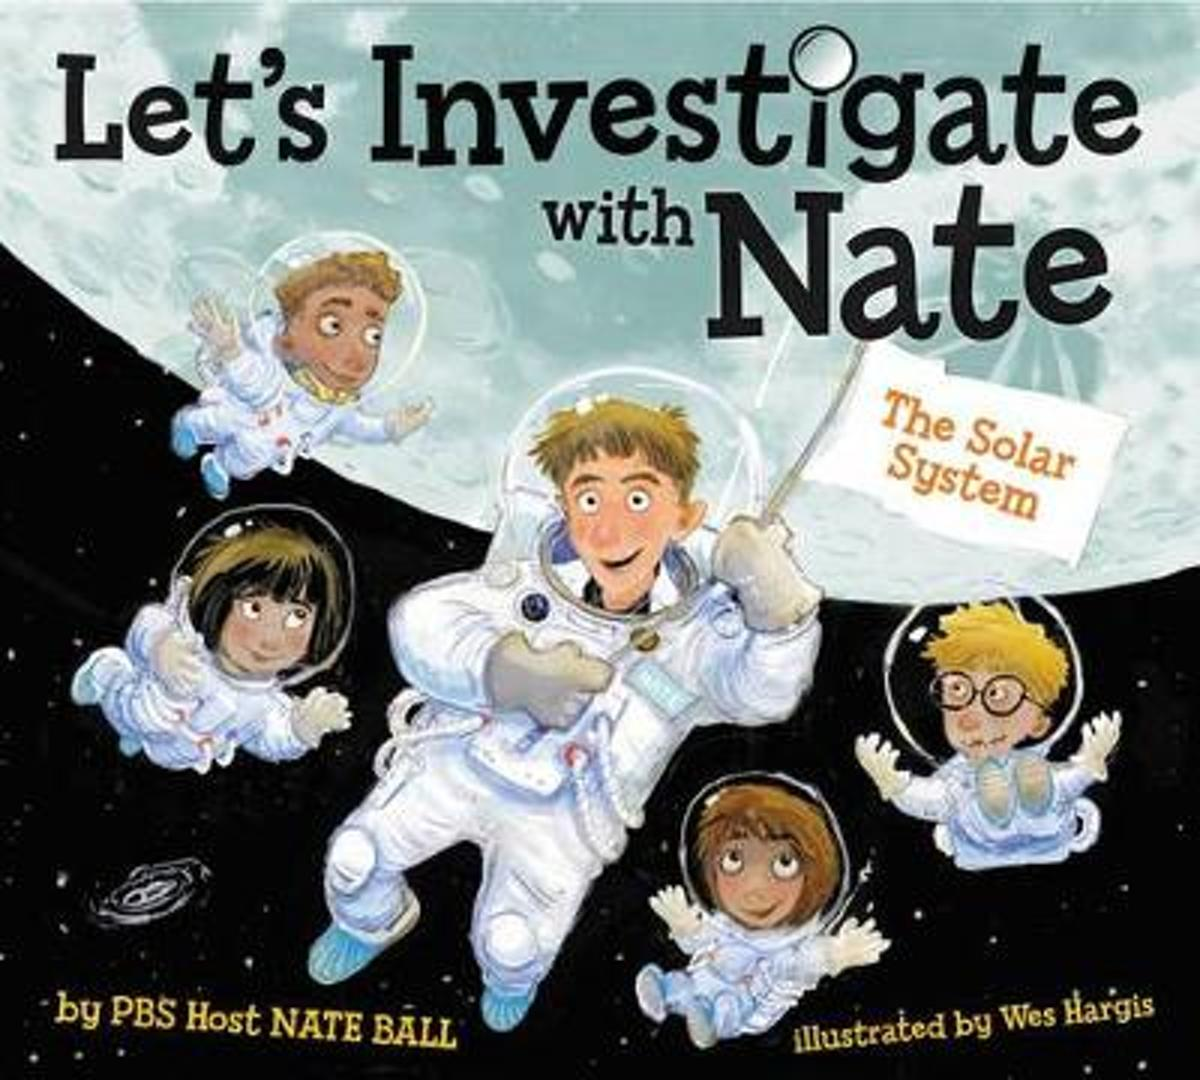 Let's Investigate With Nate #2